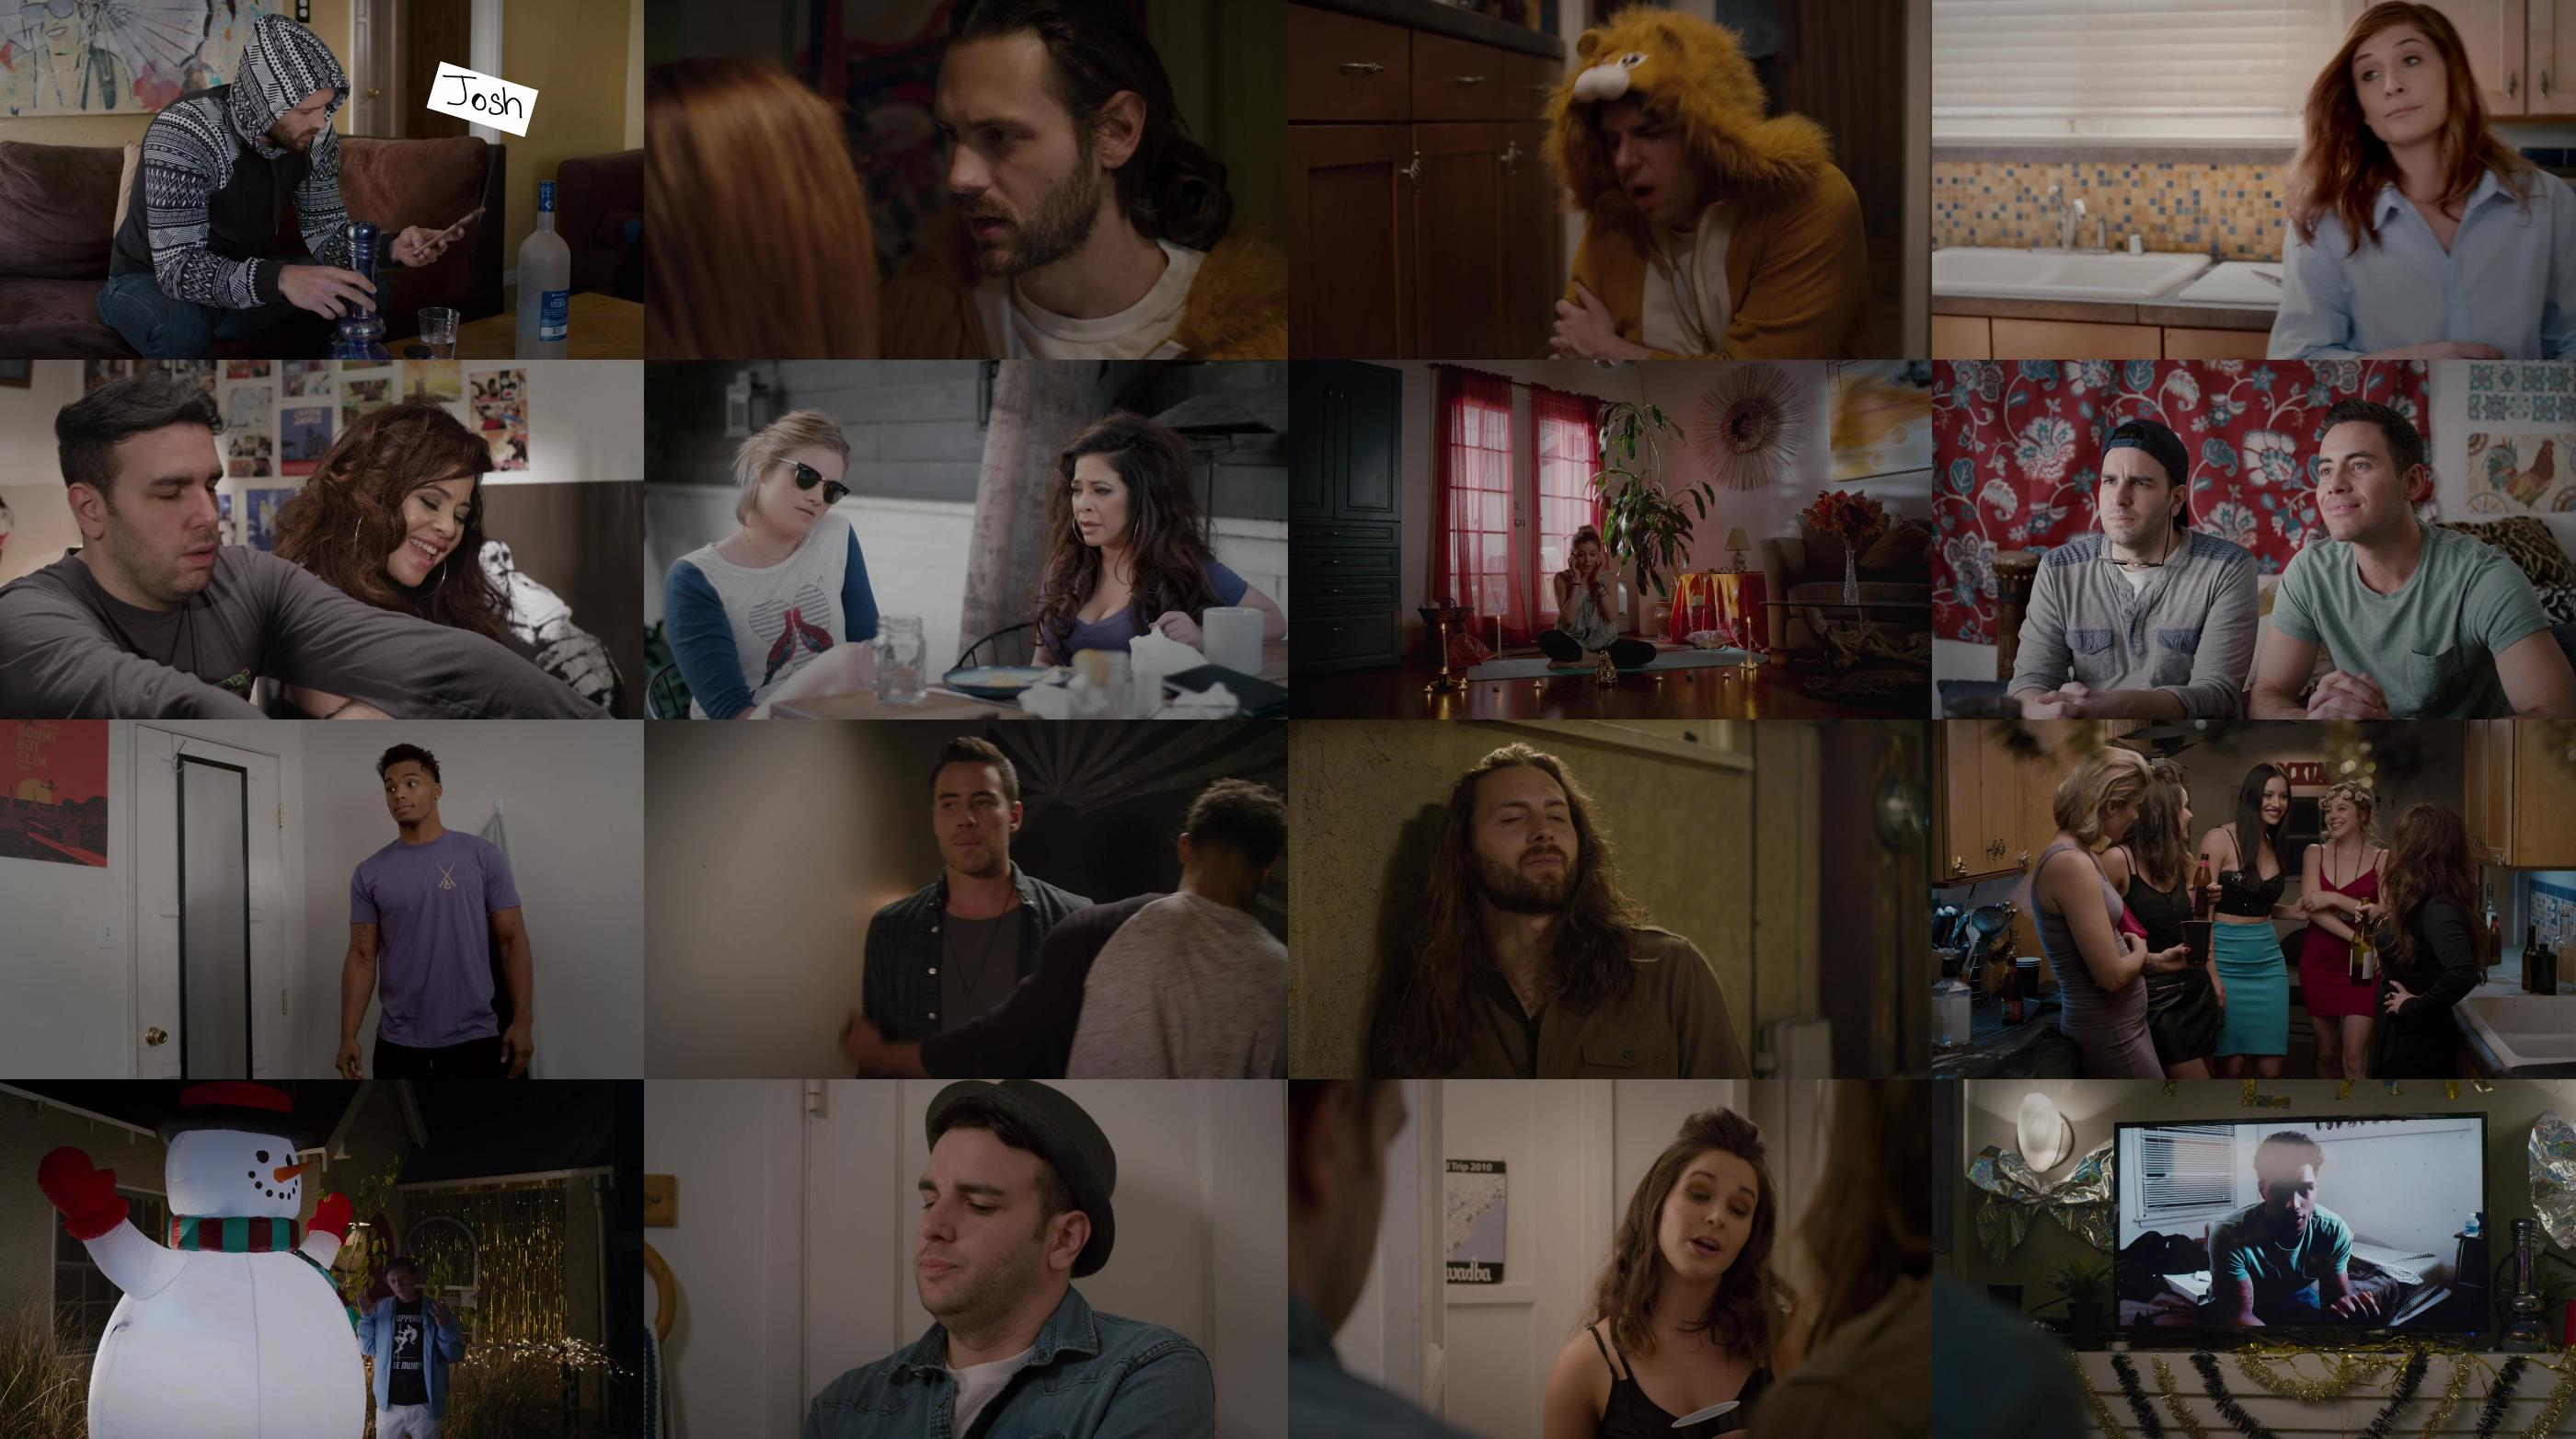 1 2 New Year 2019 720p WEB DL XviD MP3 FGT